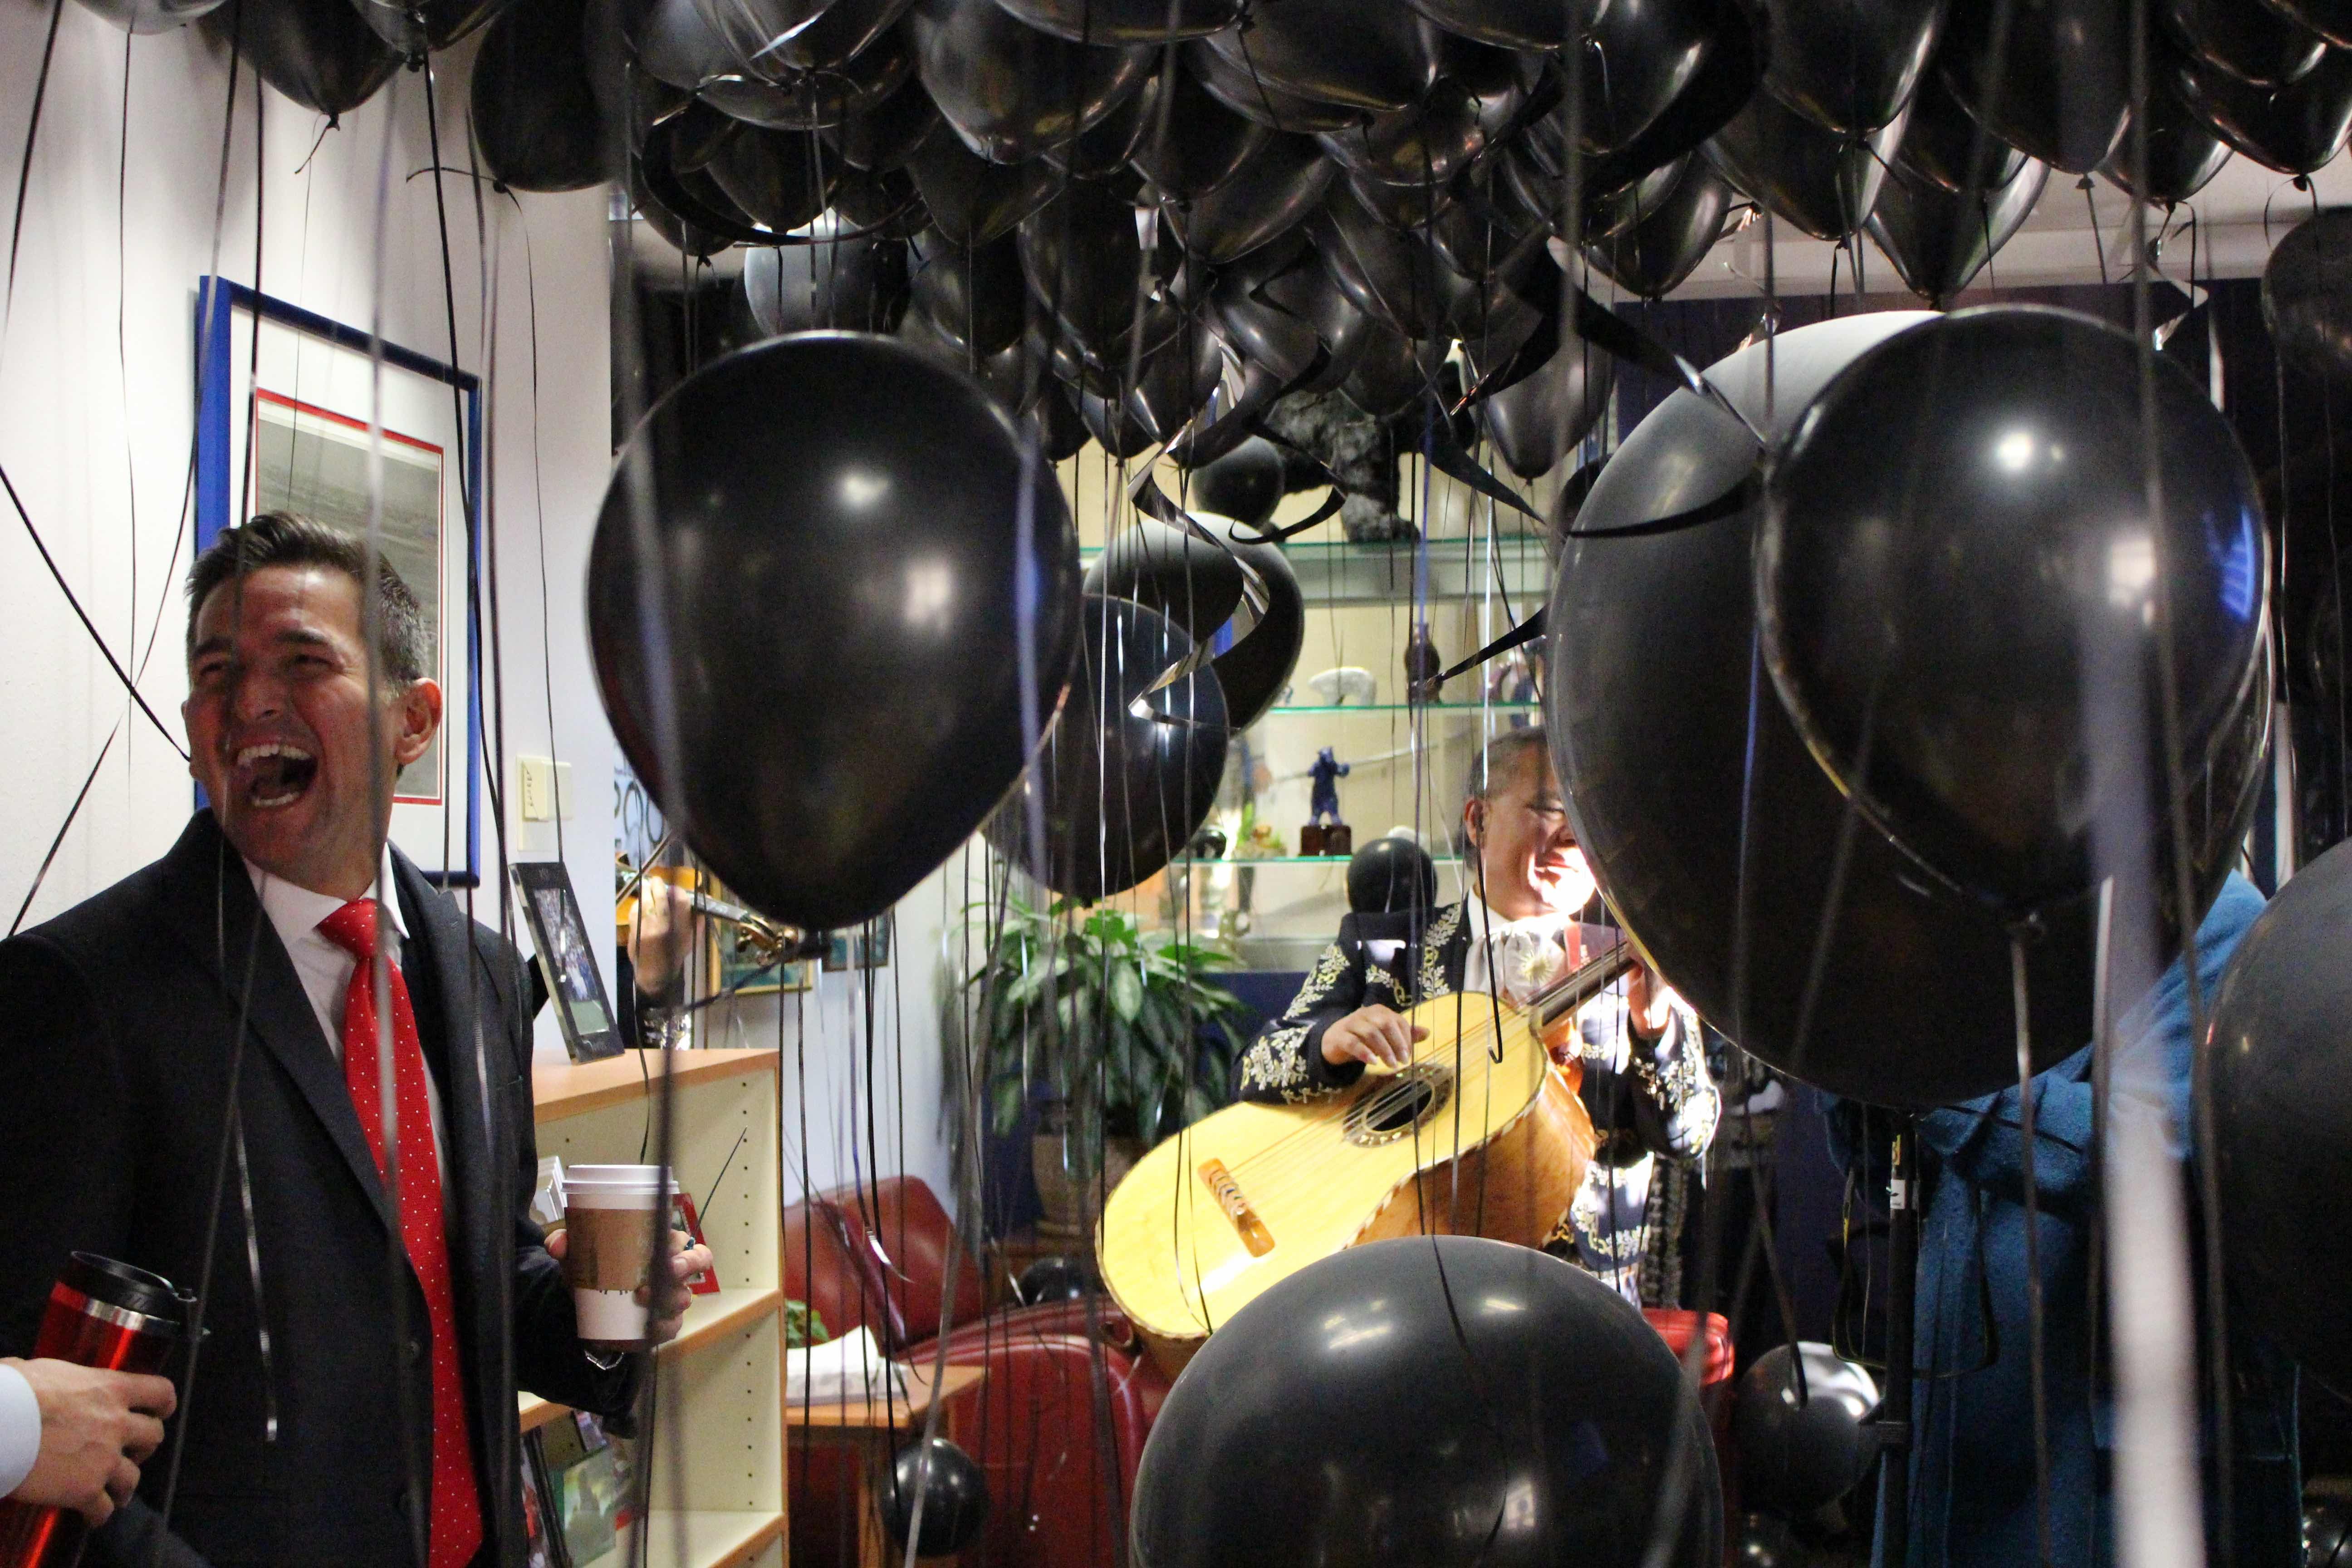 Principal Silva is surprised in his office by balloons and a mariachi band.